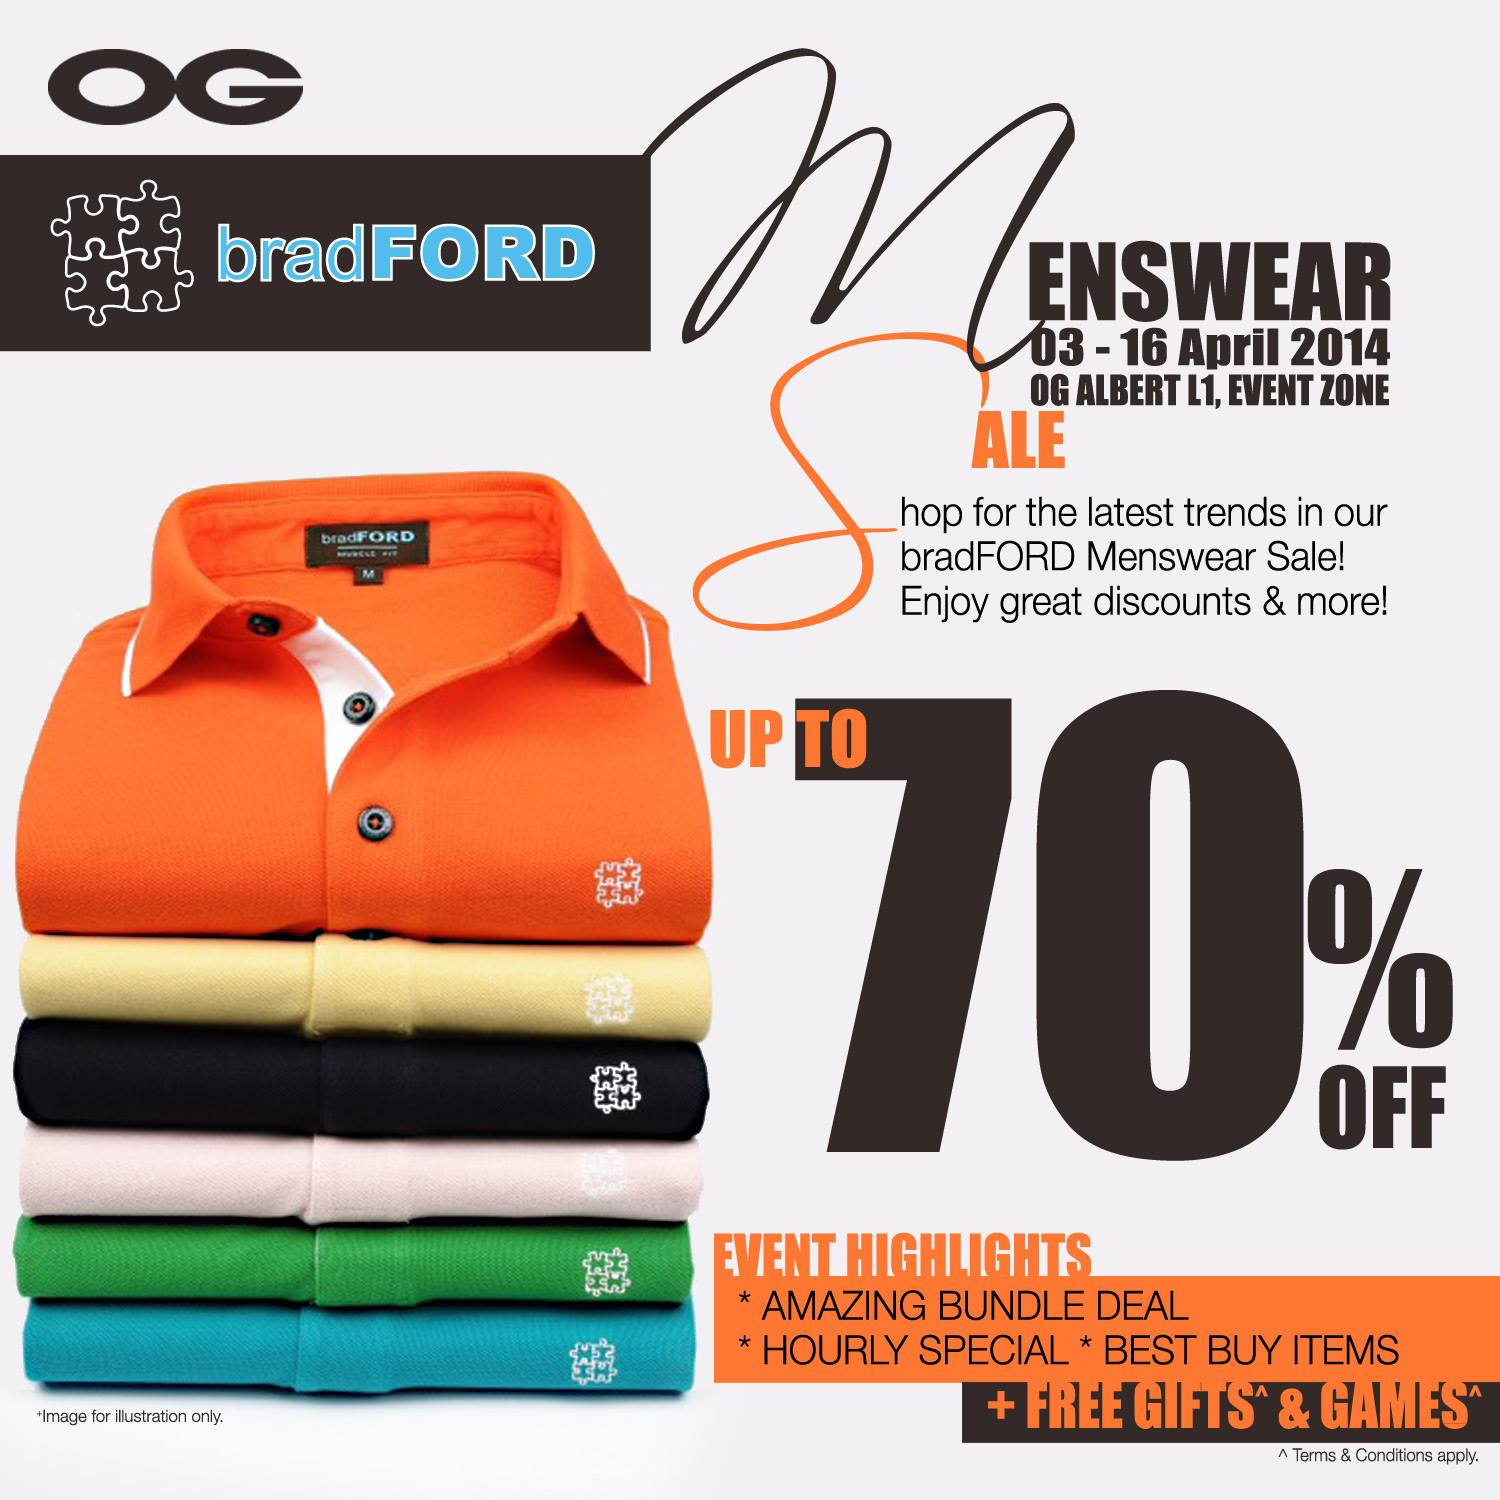 Bradford Menswear Sale Event Up To 70% Discounts @ OG Albert April 2014